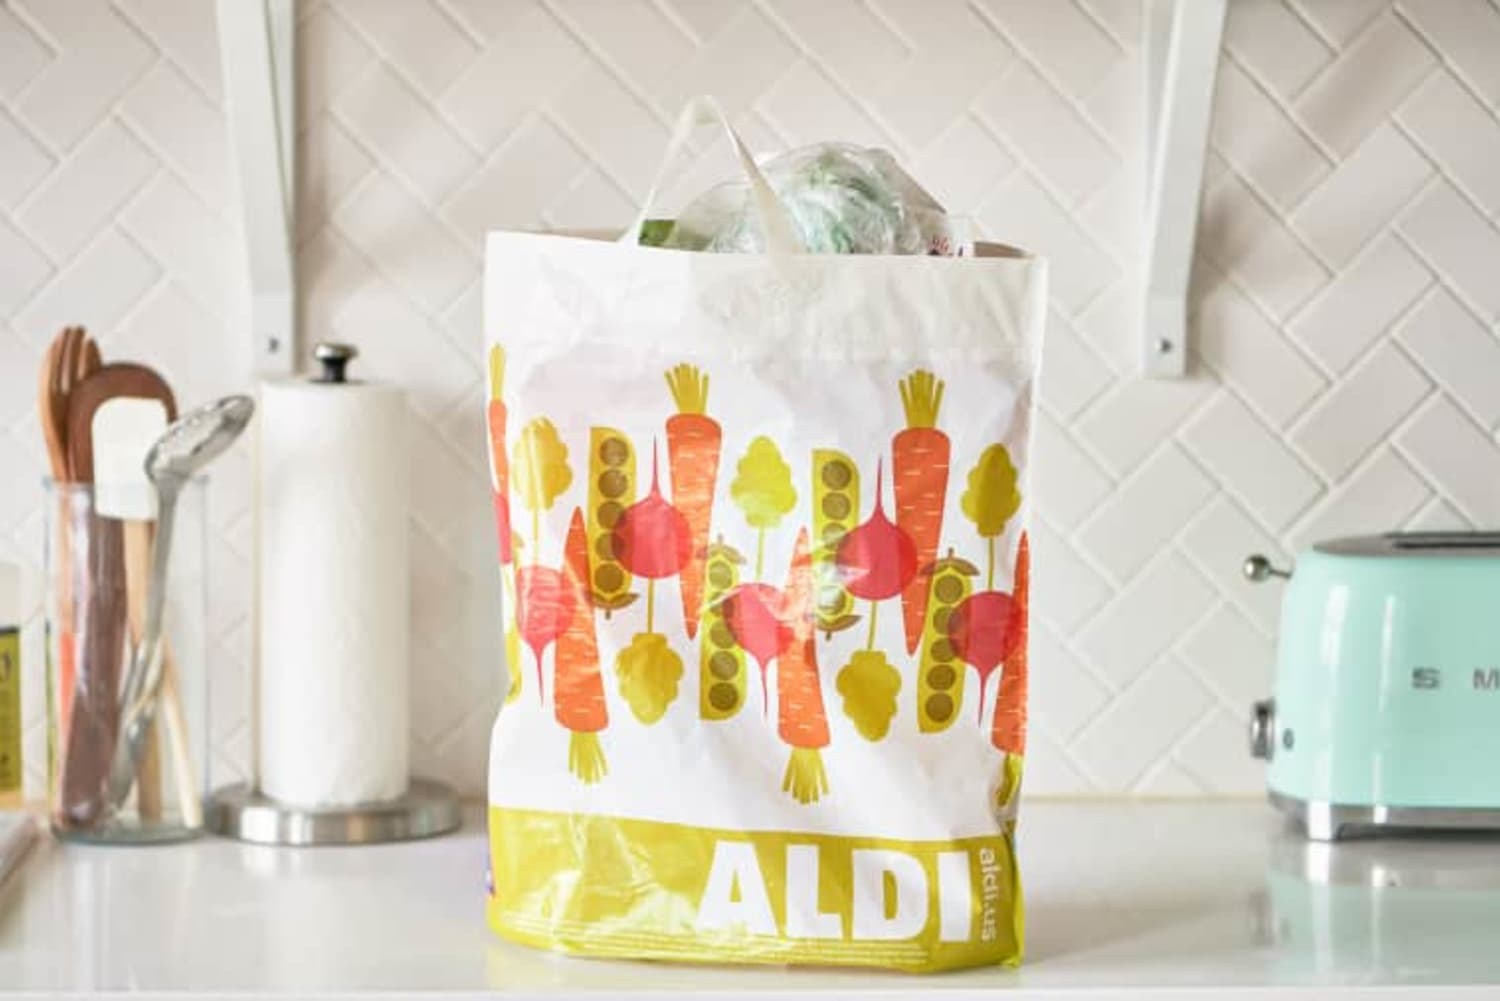 The Surprising Aldi Find That's Helping Me Feel Less Lonely This Thanksgiving